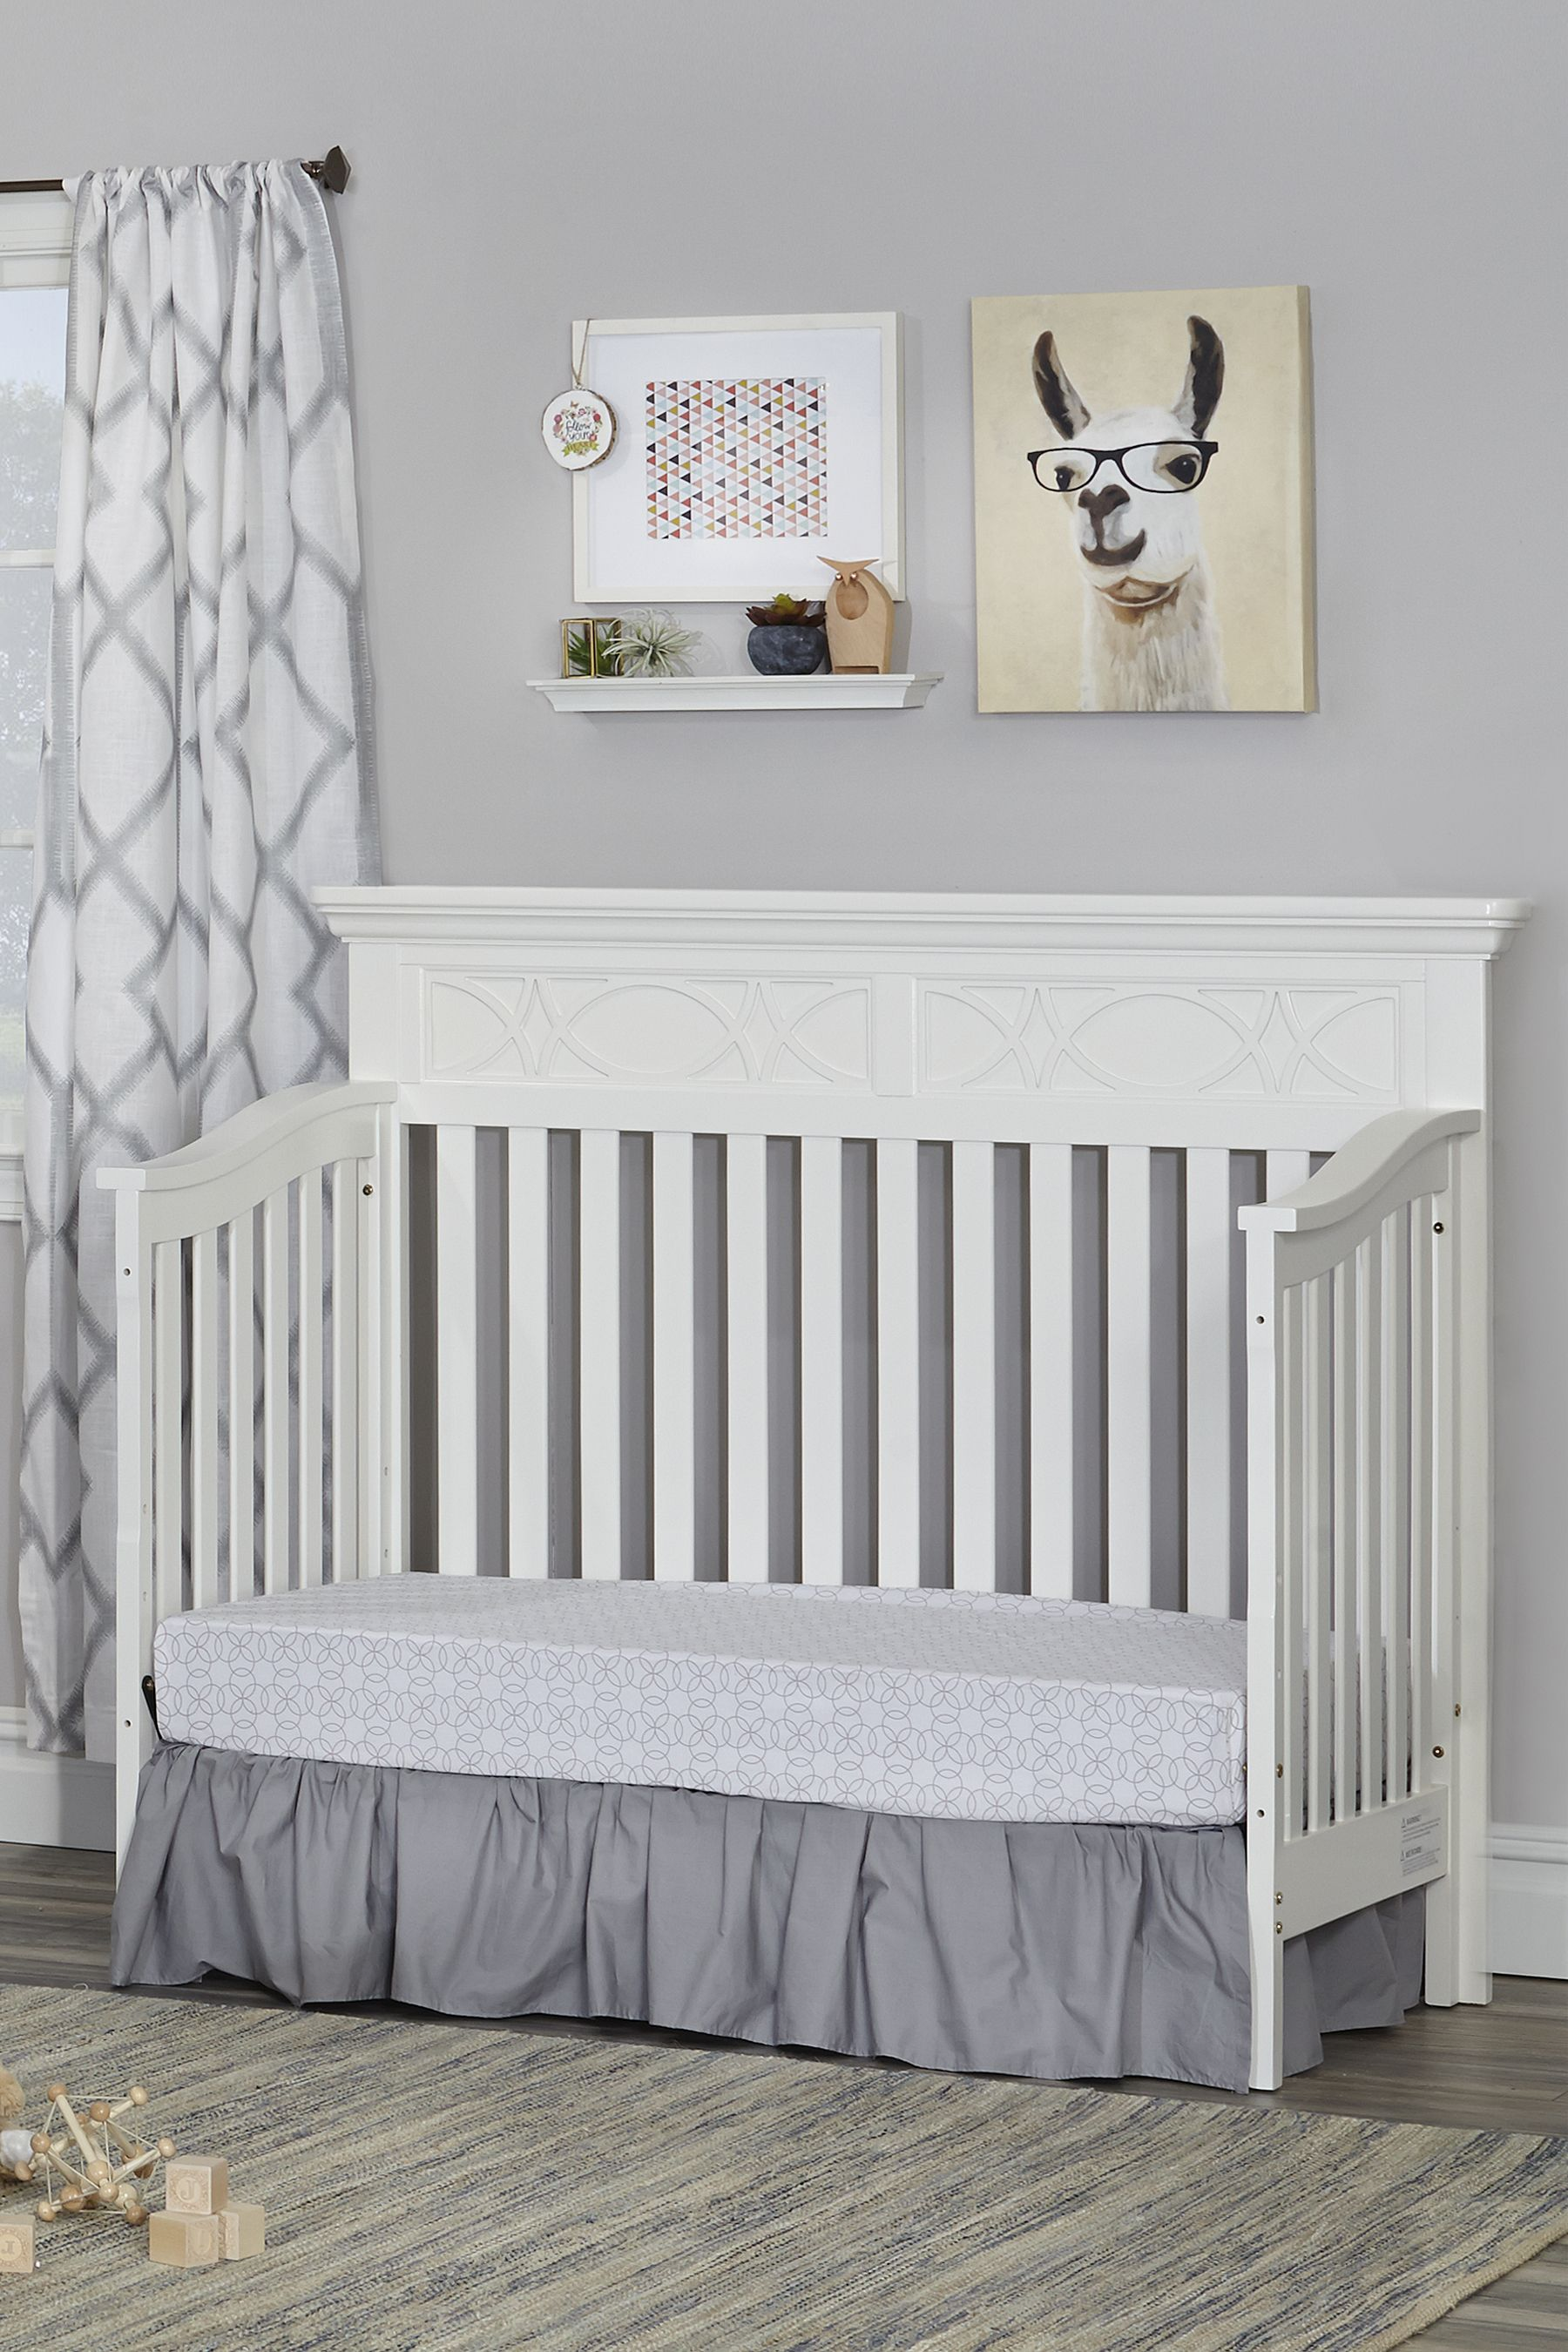 here dust your s collection velvet bella notte bedding offers by with pin the luxury to ruffle buy linen baby add layers and of whisper cribs linens for cotton set crib